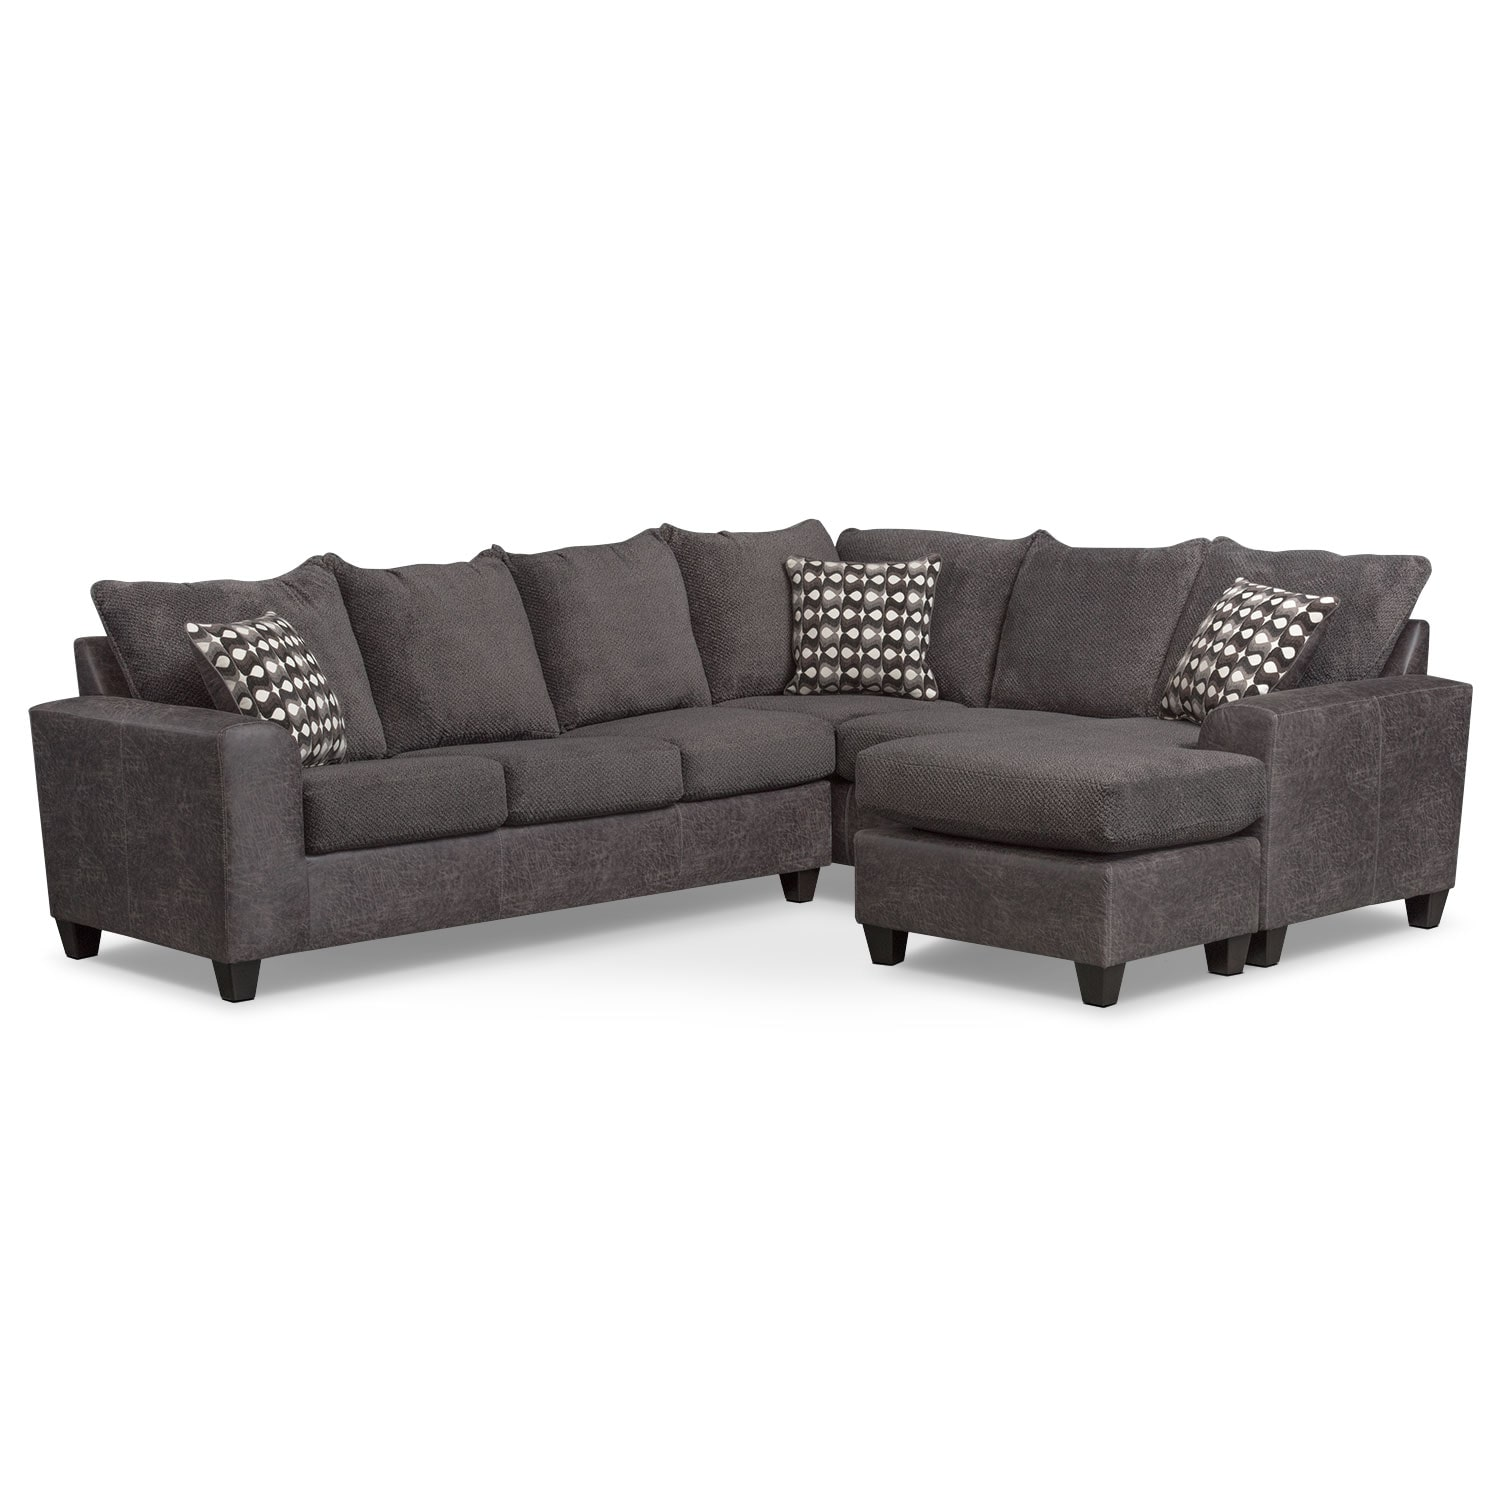 Brando 3 piece sectional with modular chaise smoke for 3 piece sectional sofa with chaise